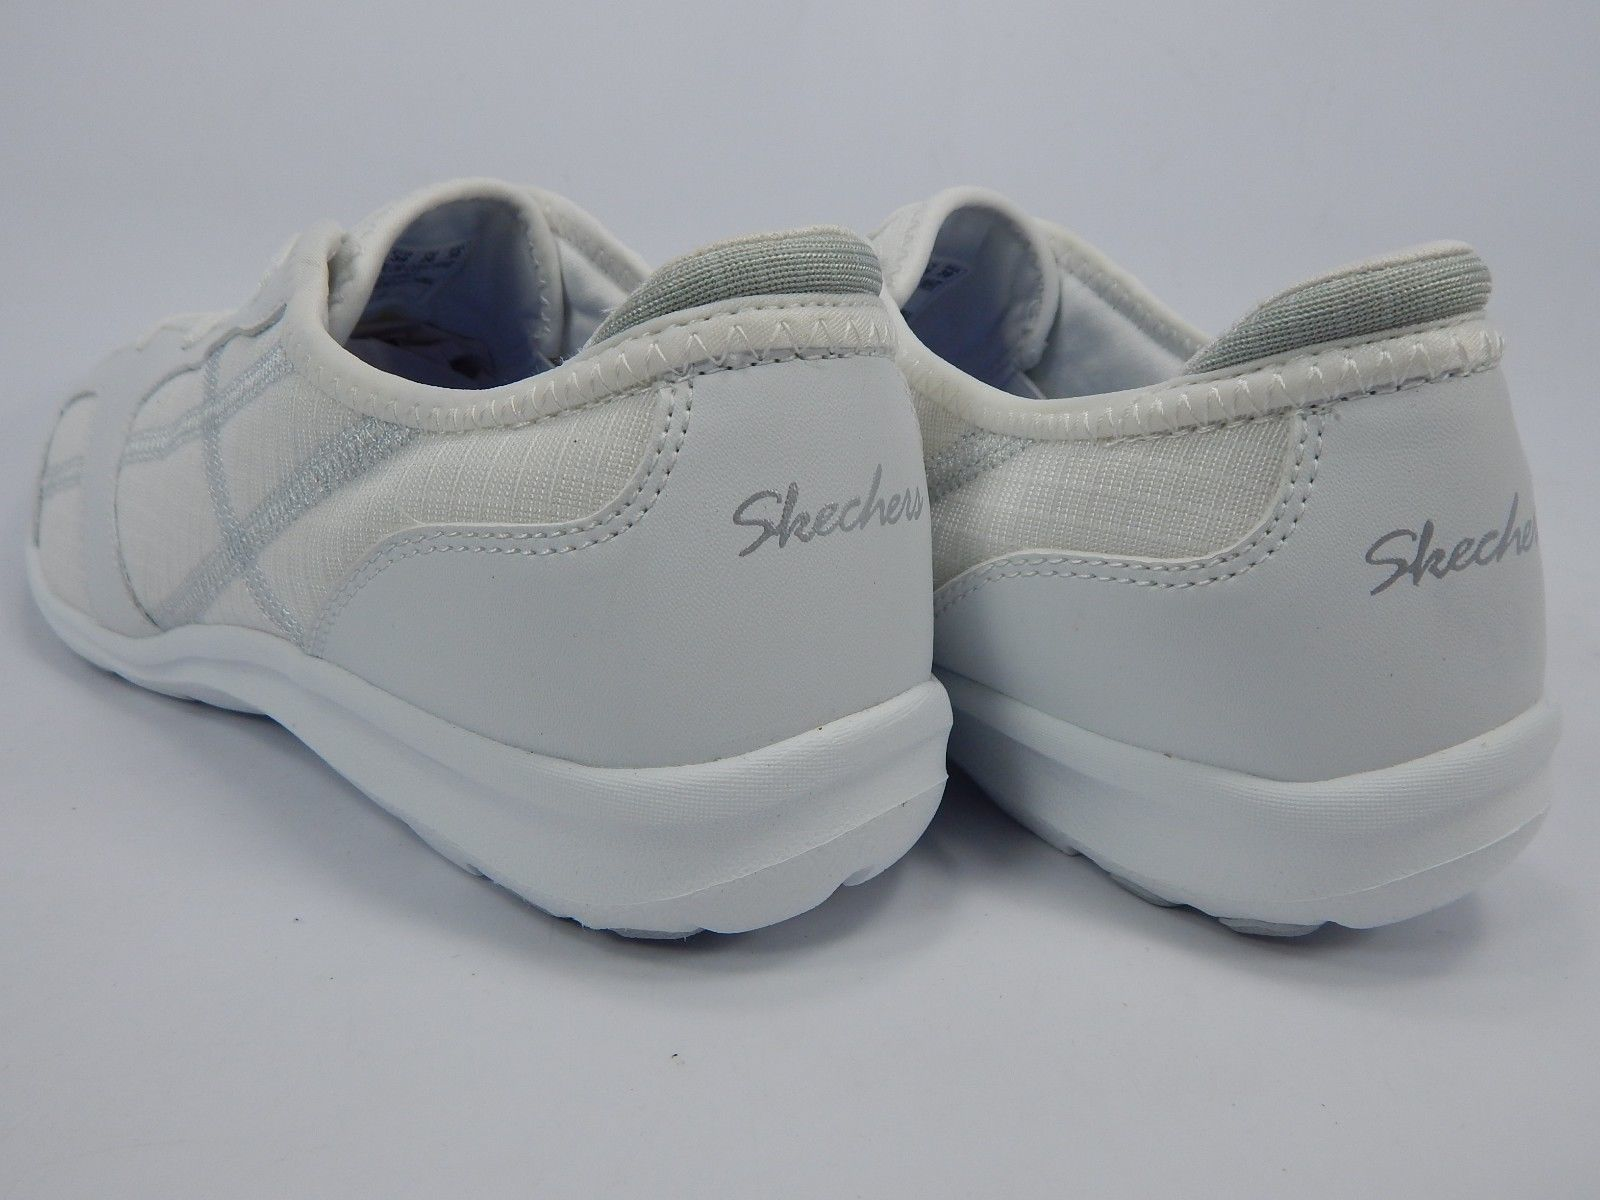 Skechers Relaxed Fit Dreamchaser Ante Up Sz 9 M (B) EU 39 Women's Slip On Shoes